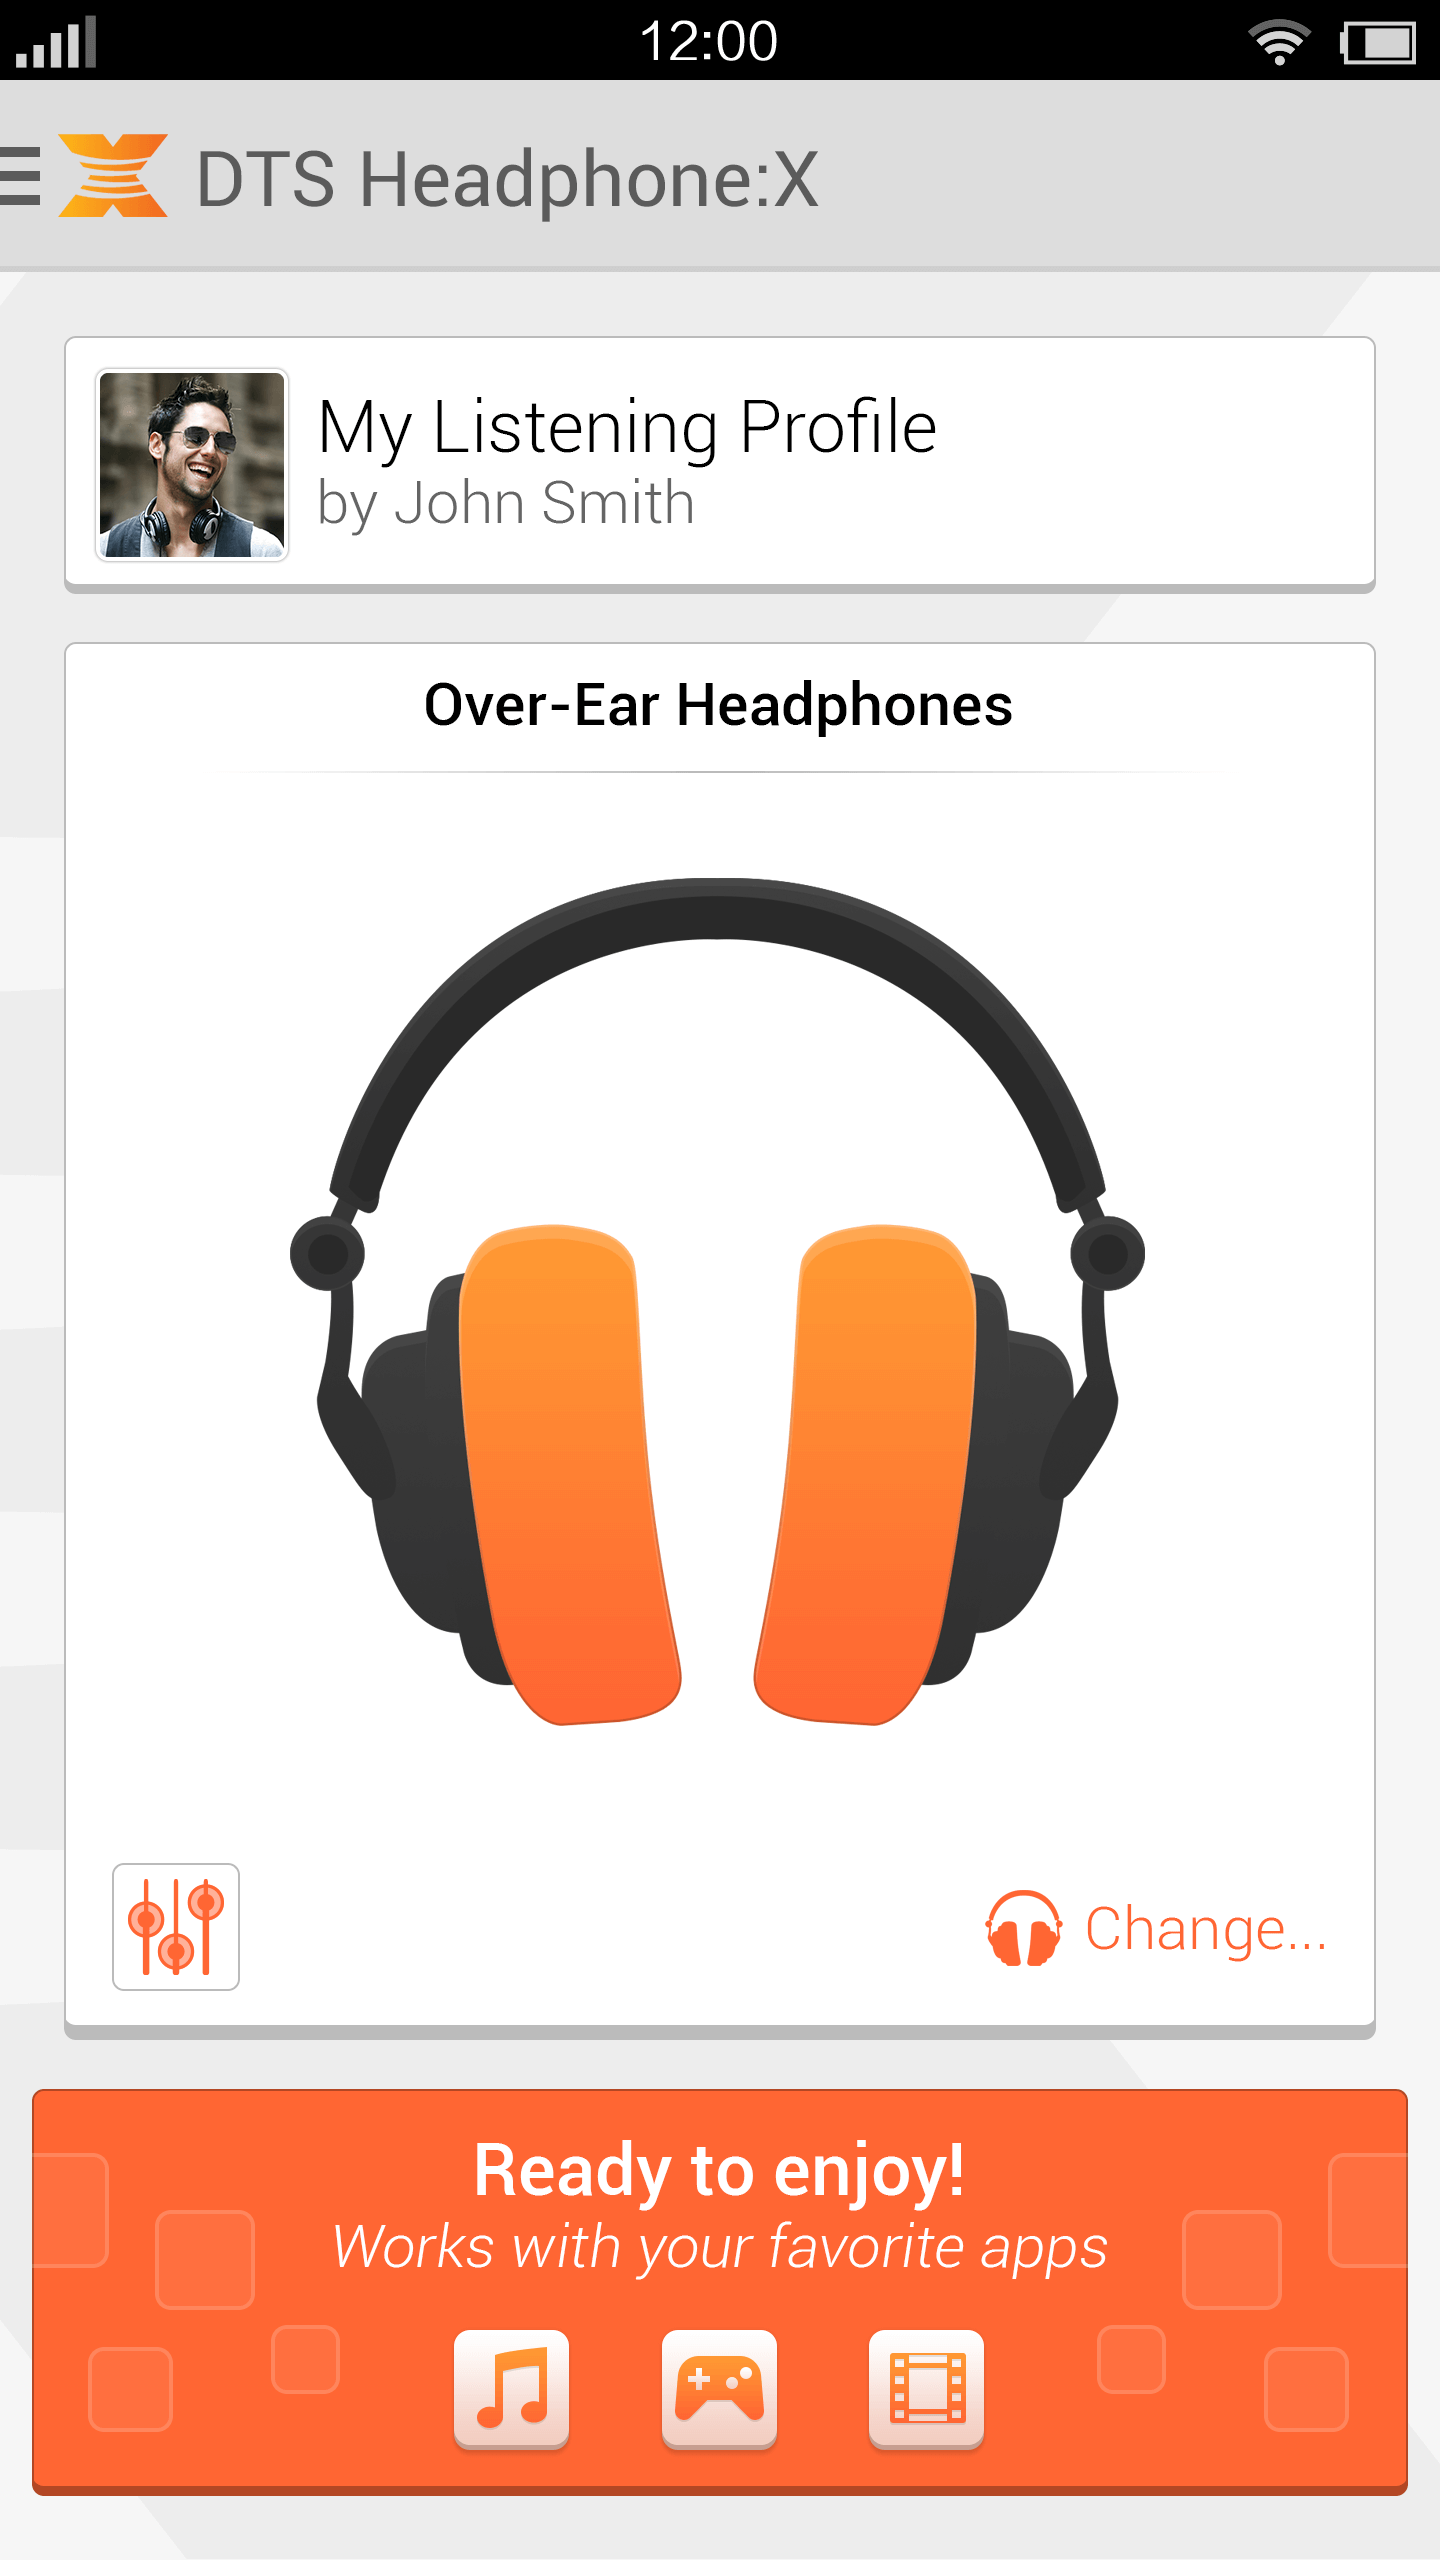 DTS Headphone:X Android Control Panel App